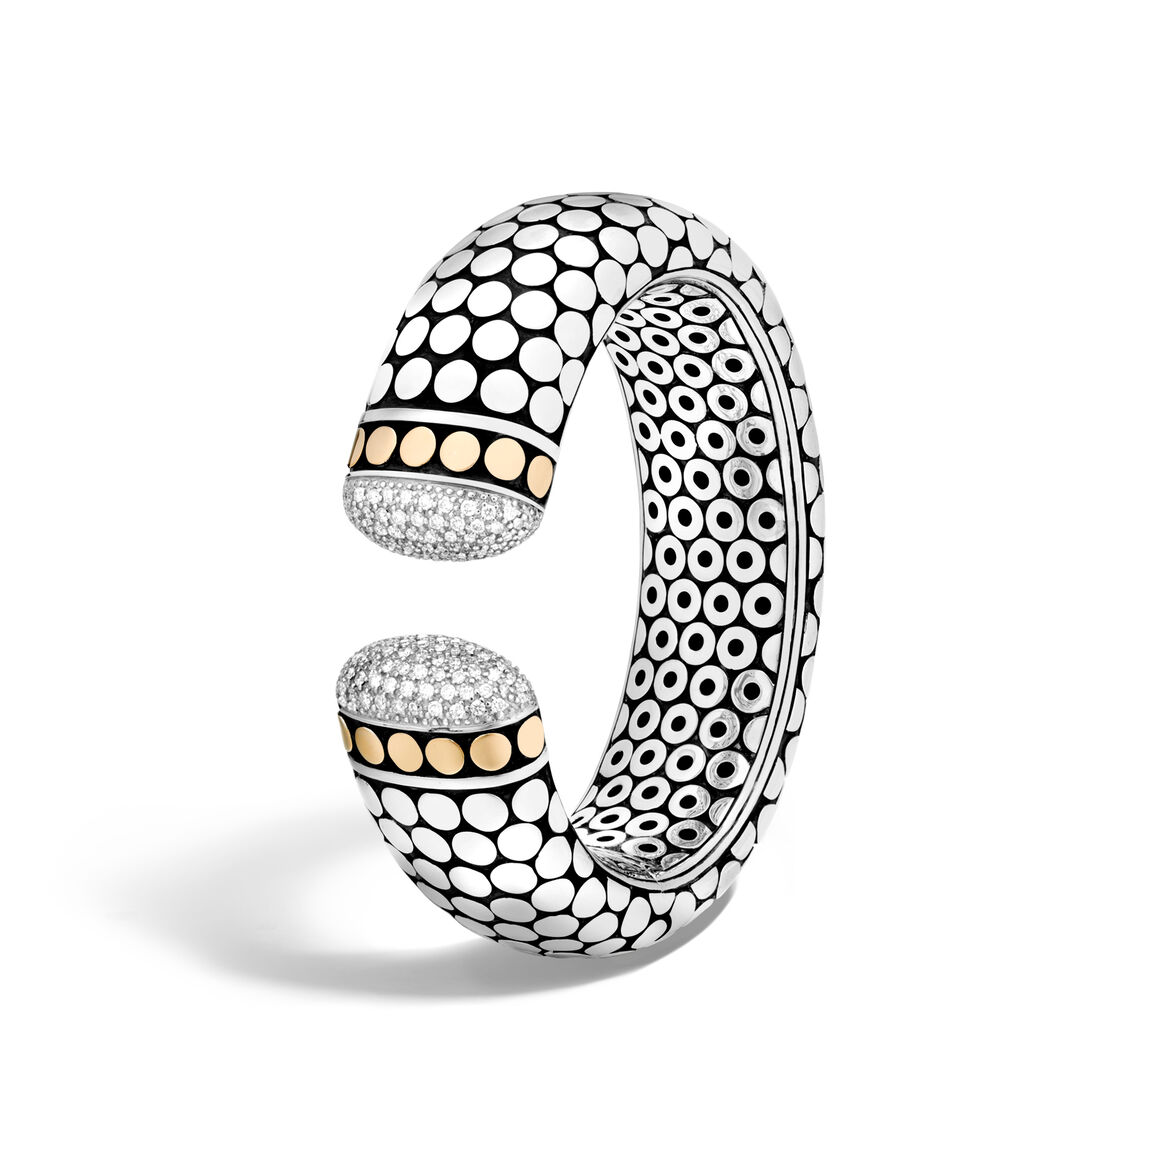 Dot 24MM Kick Cuff in Silver and 18K Gold with Diamonds